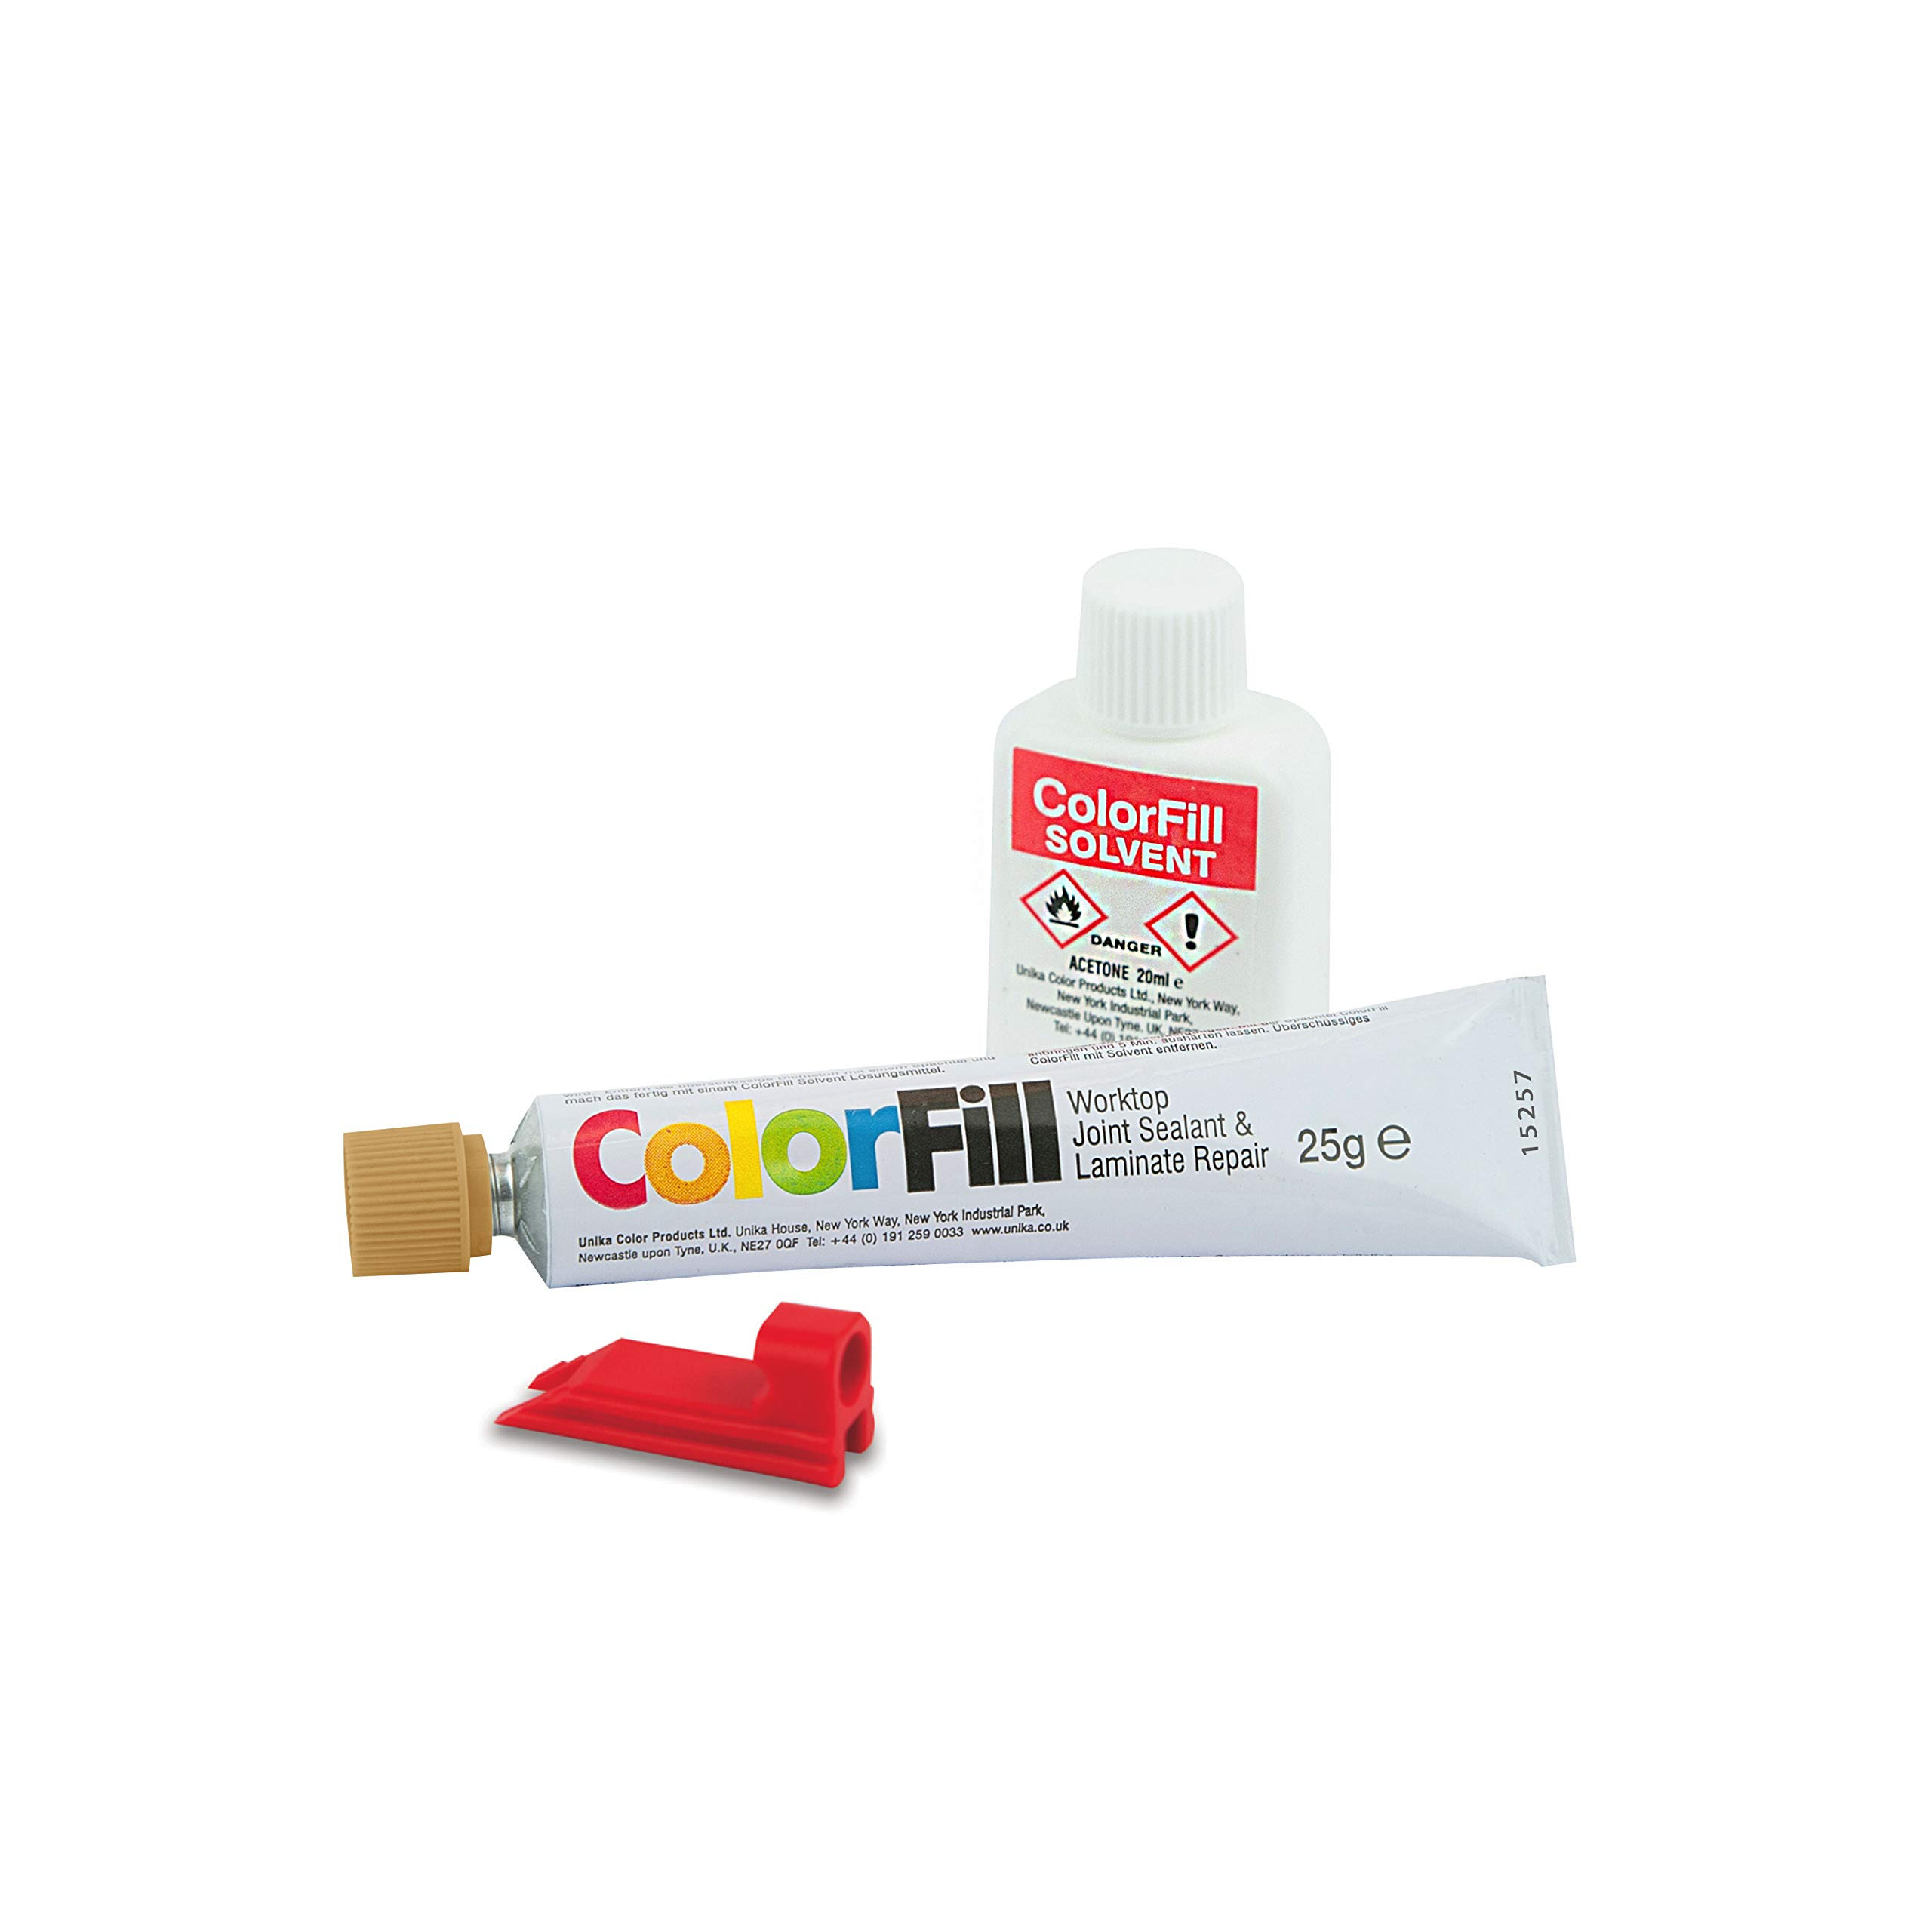 Unika ColourFill Worktop Jointing Sealer Laminate Repair Various Colour Solvent